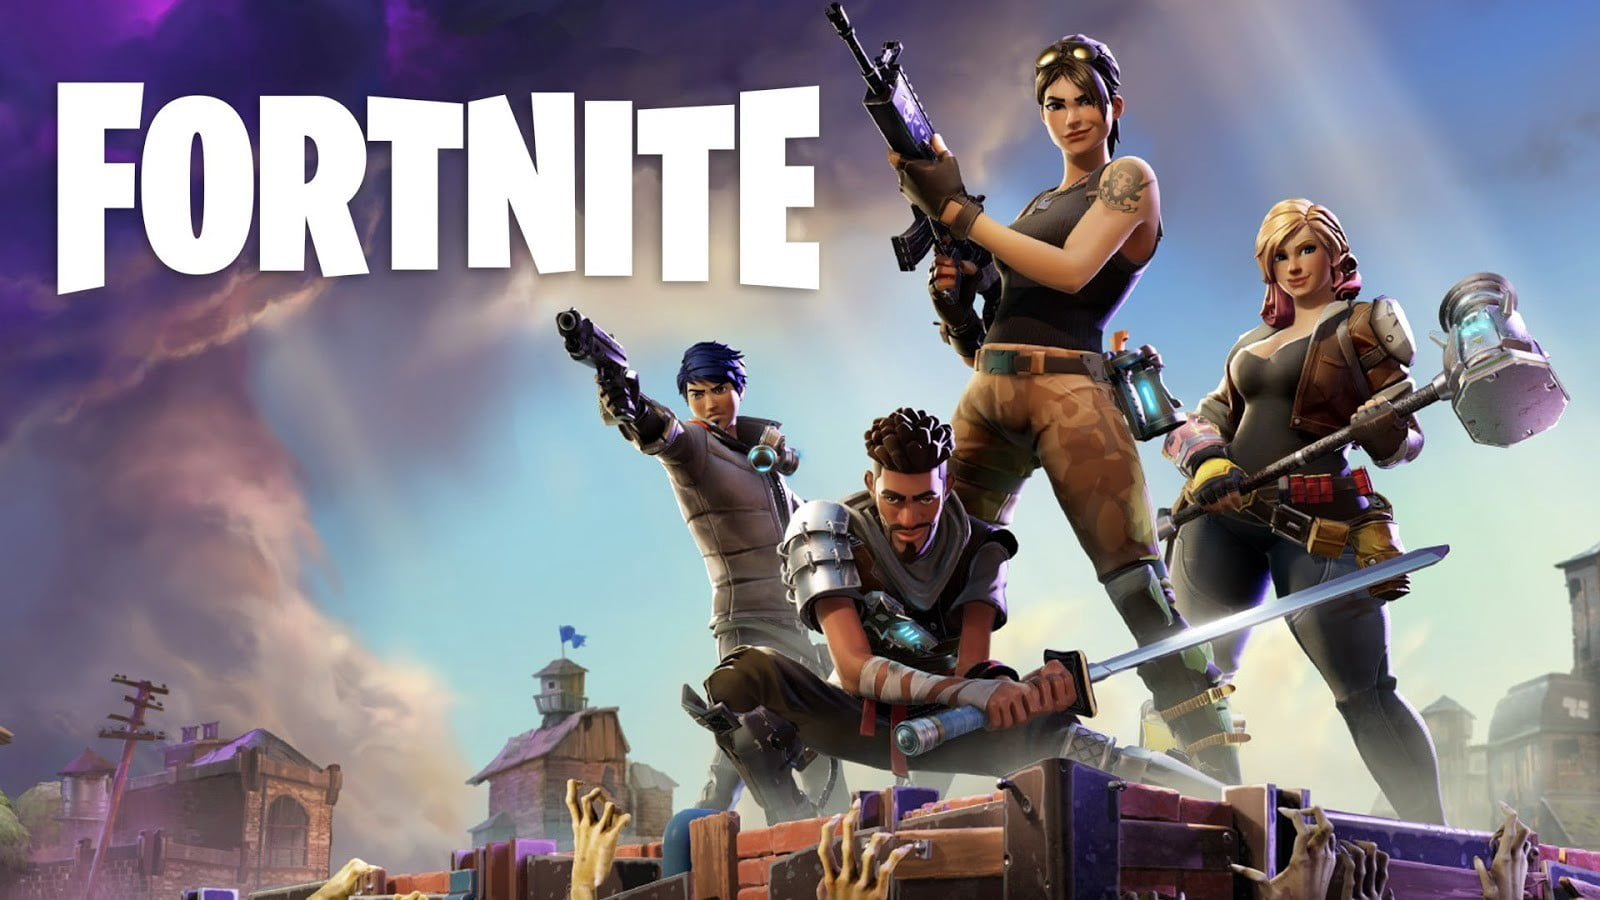 fortnite-experience-oneplus8-series